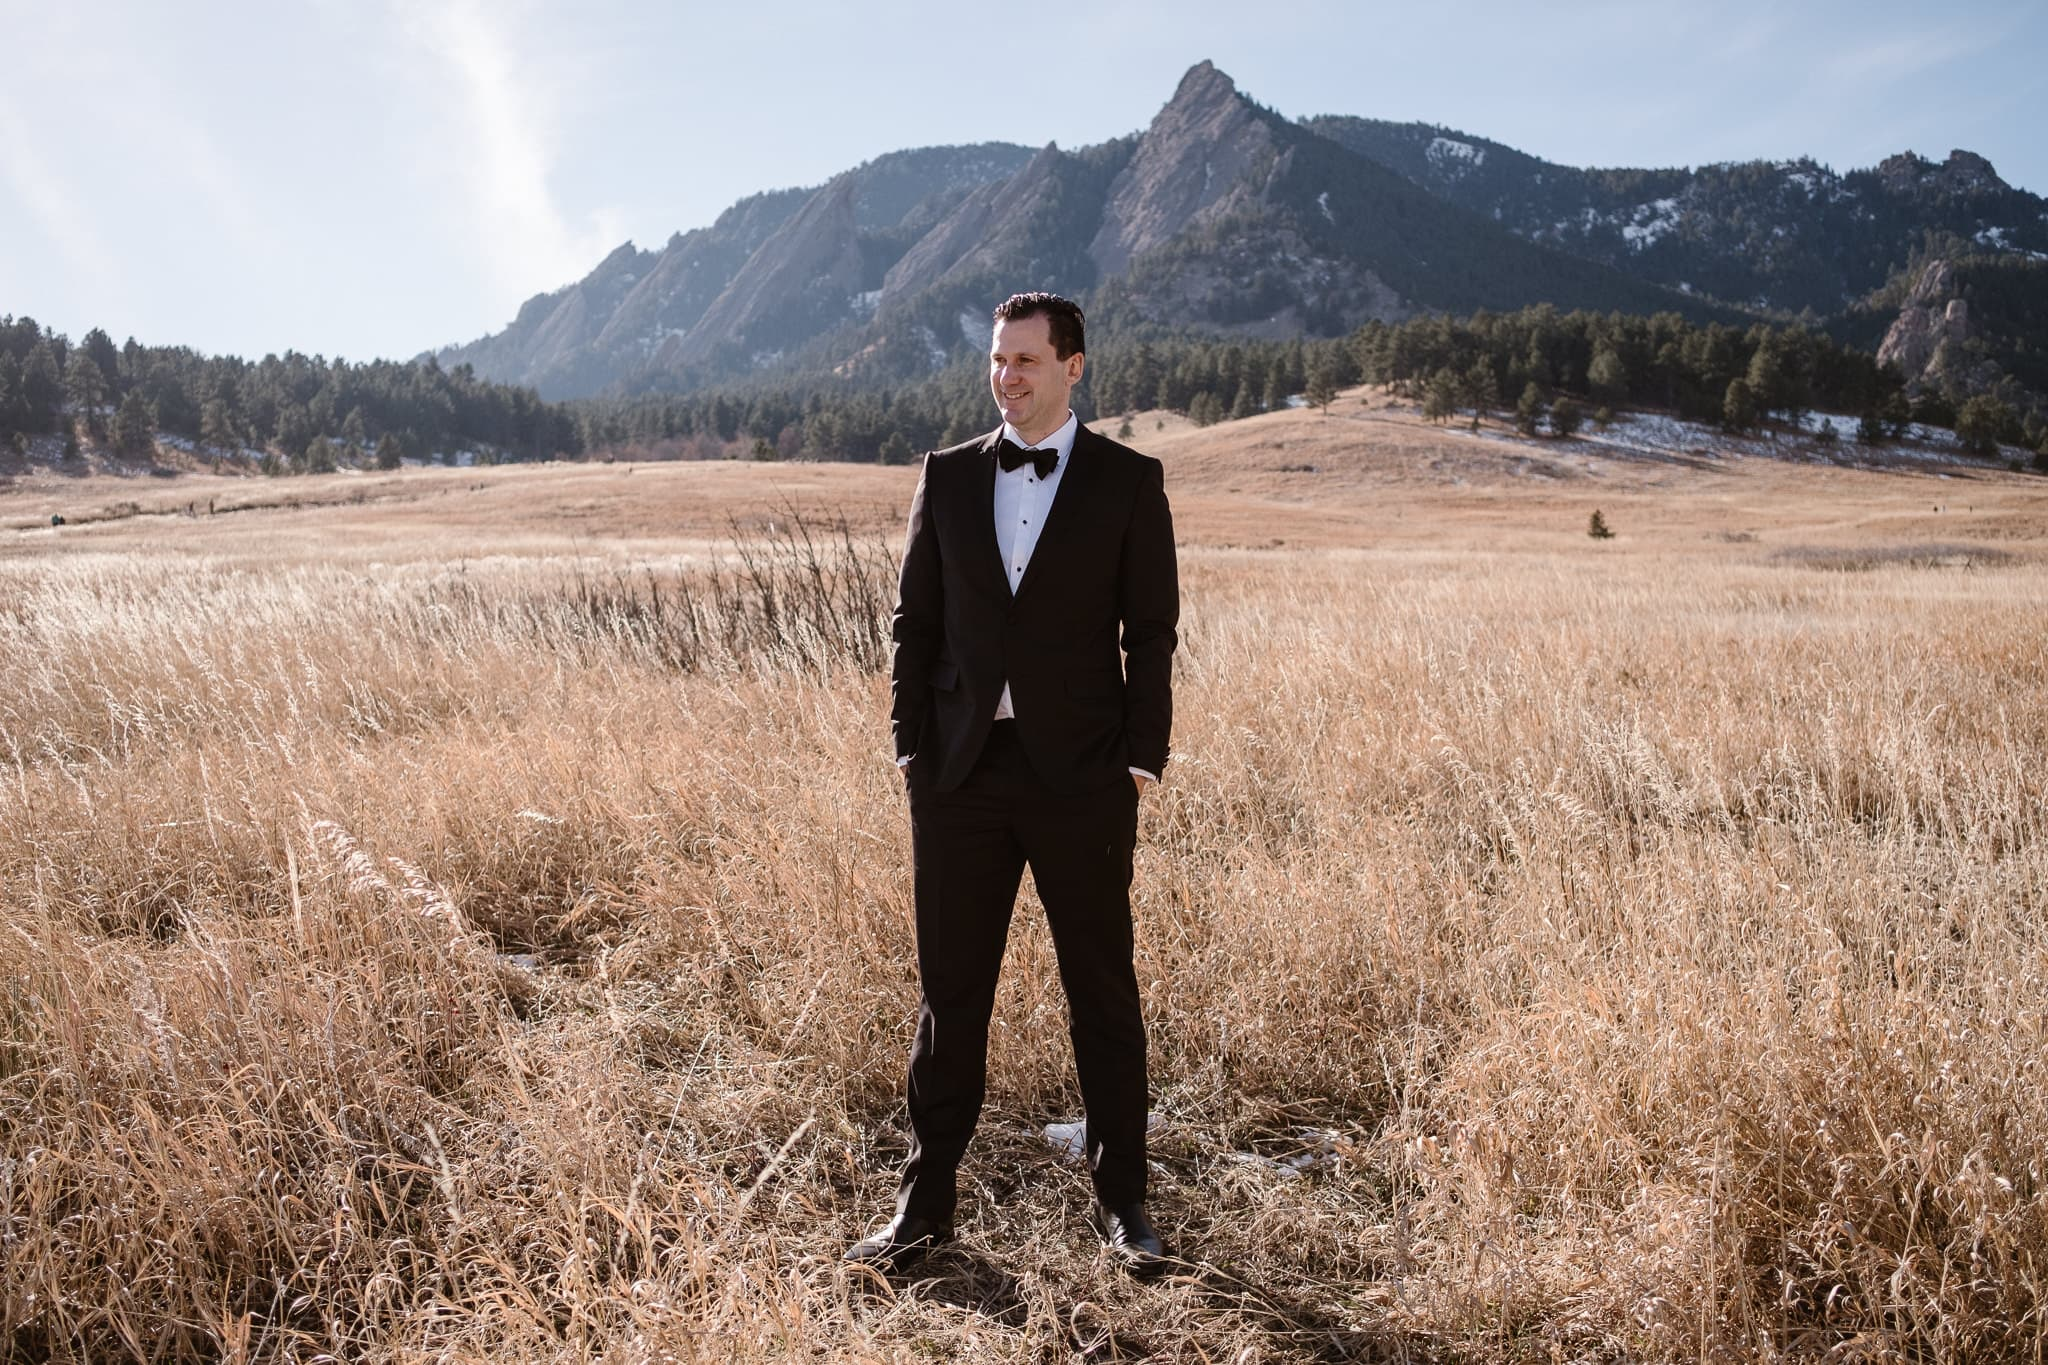 Groom portraits at Chautauqua with views of the Flatirons, Boulder wedding photographer, Colorado wedding photographer, St Julien wedding with mountain wedding photos, groom wearing black suit and bowtie